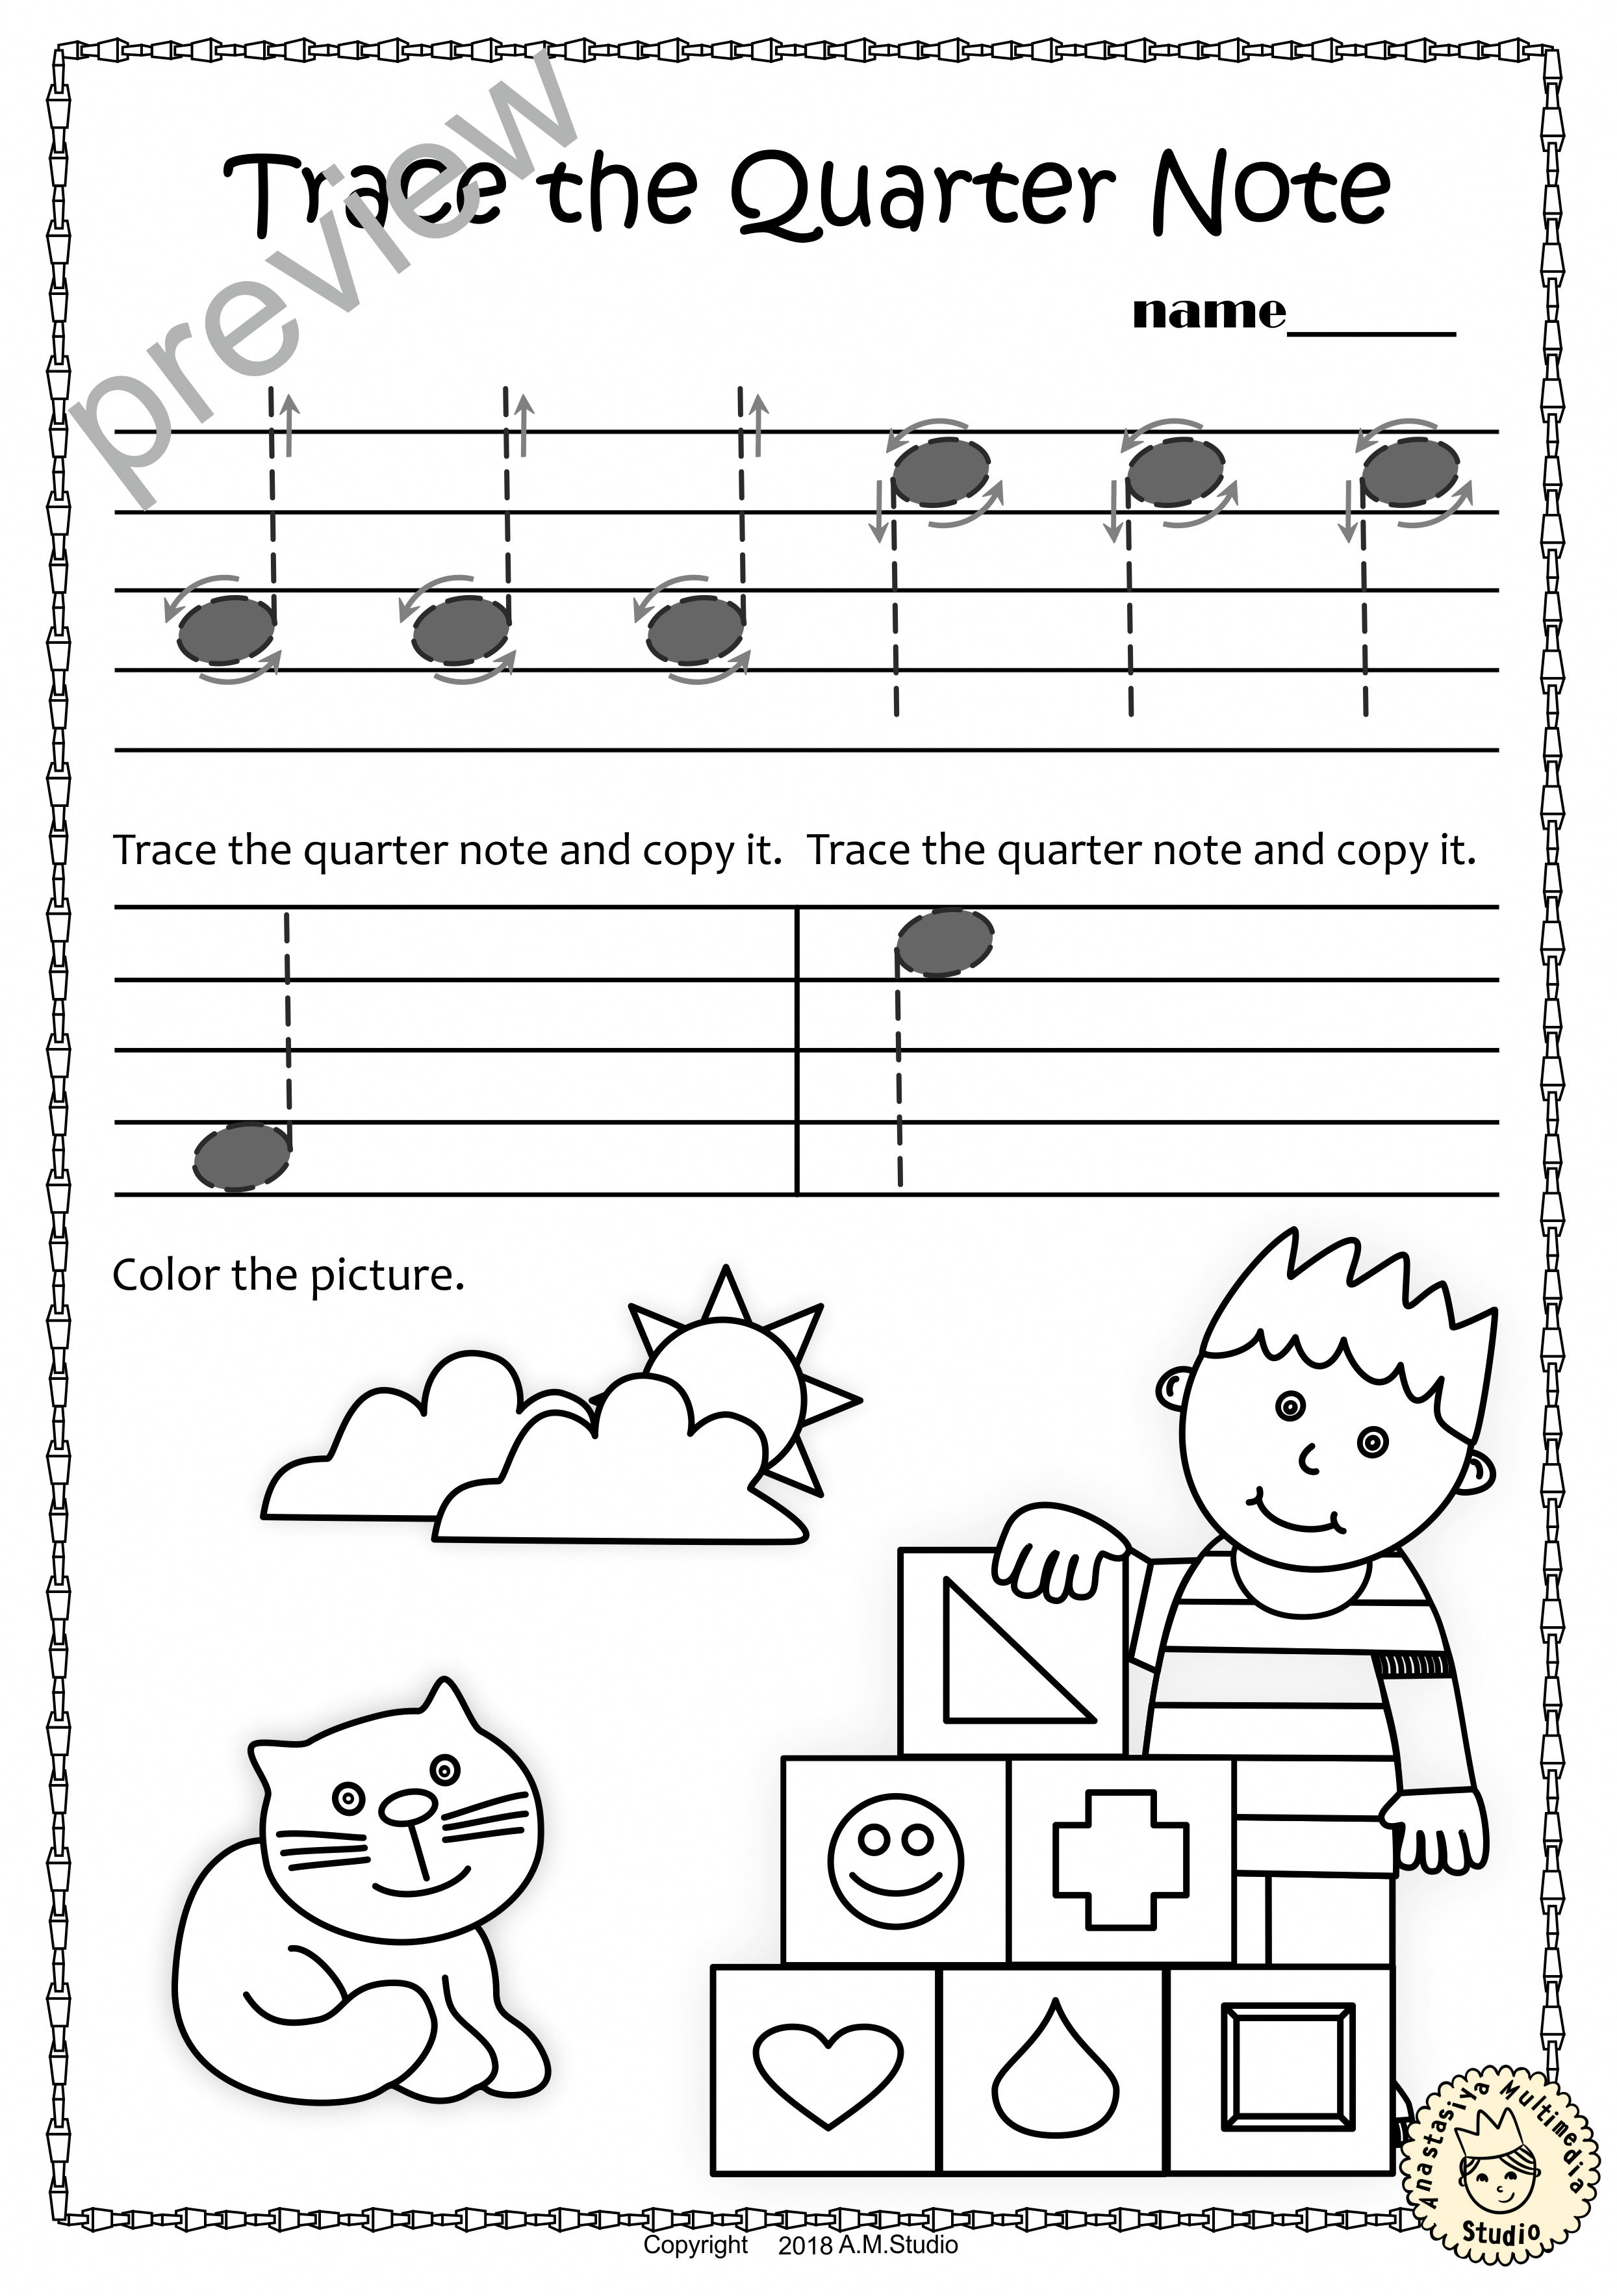 A Set Of 20 Summer Themed Music Worksheets Is Created To Help Your Students Learn To Trace Cop Music Theory Worksheets Elementary Music Worksheets Music Notes